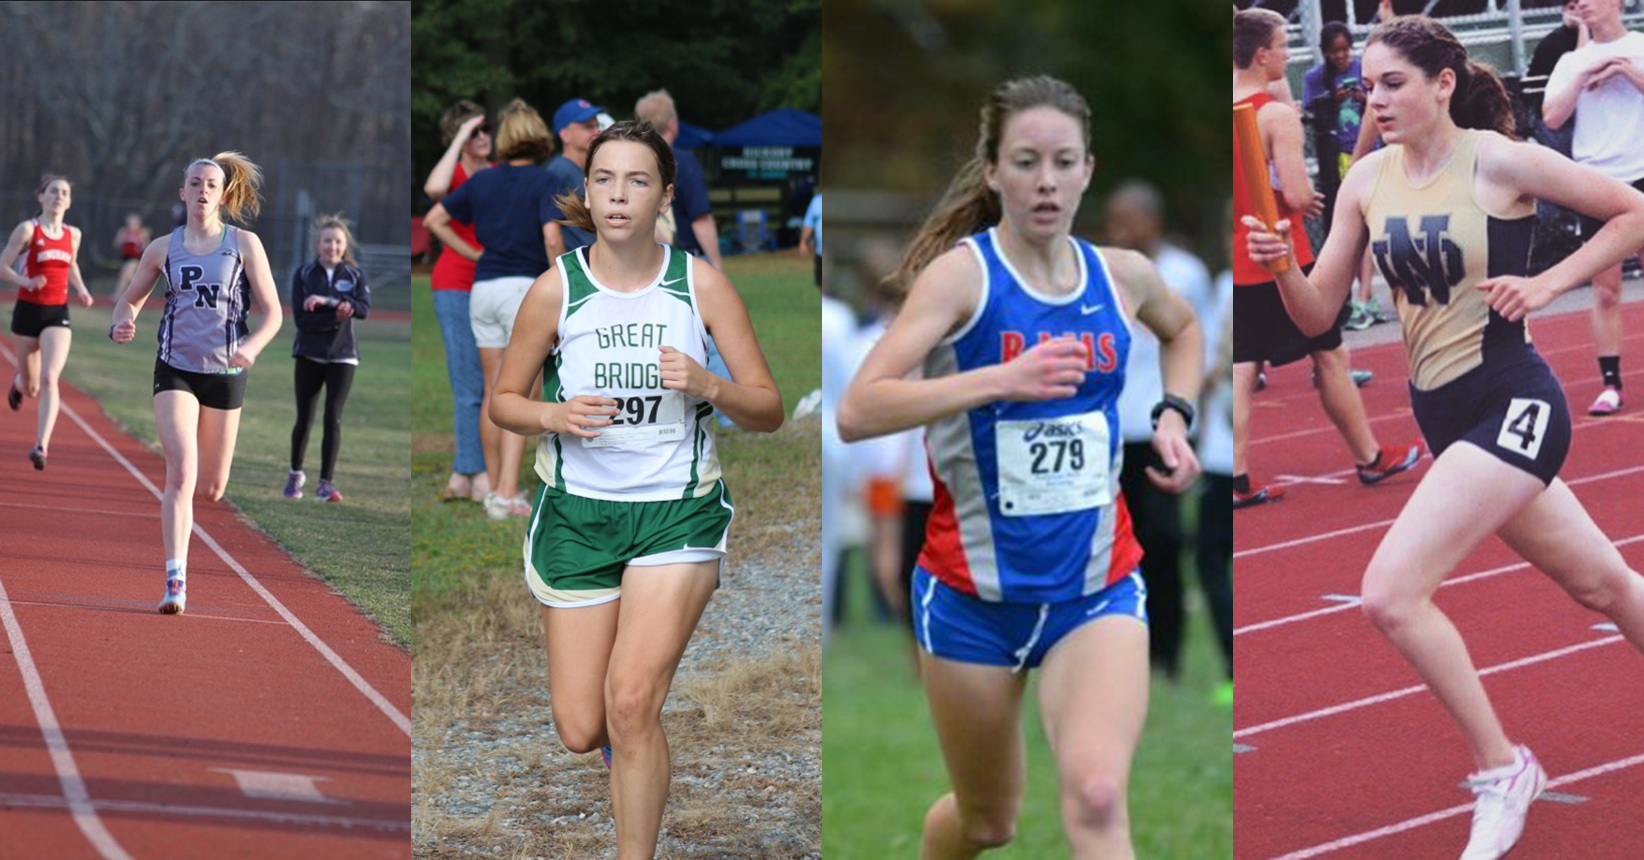 Cross Country/Track Inks Four Freshmen for 2017 Season